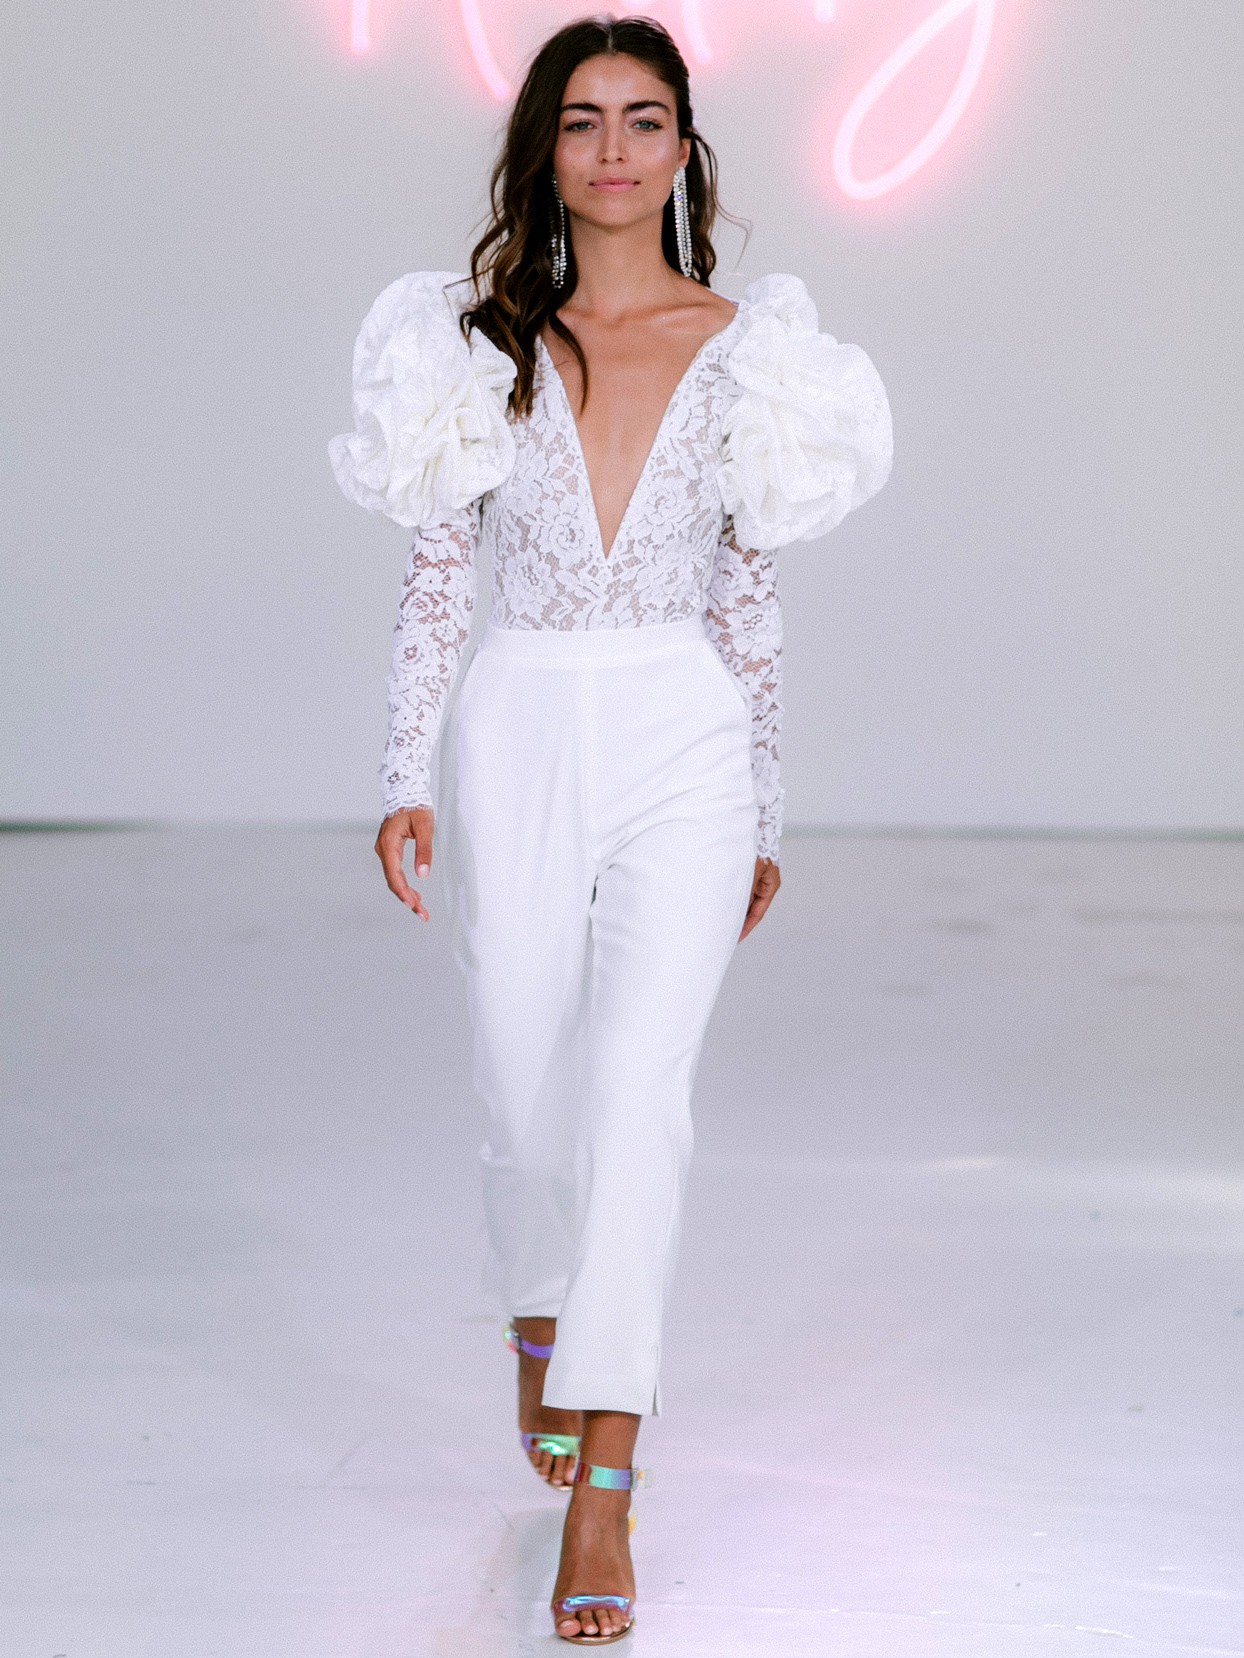 Rime Arodaky X The Mews Bridal puffed lace long sleeves jumpsuit wedding dress fall 2020